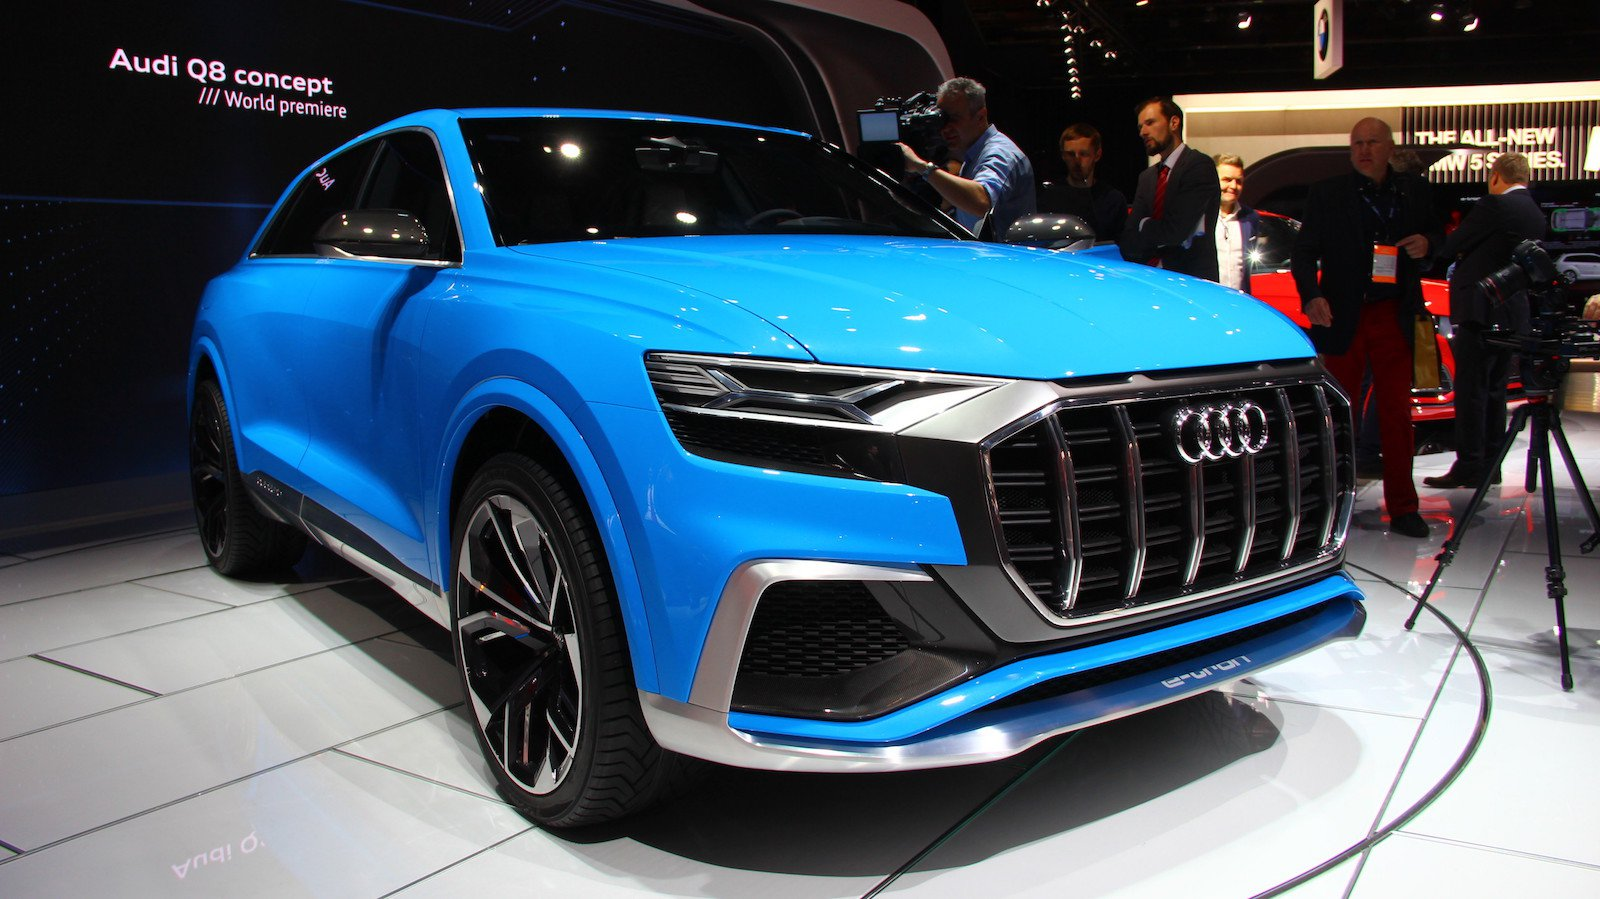 Audi Q8 Concept is one of Those Coupes That Thinks it's an SUV…